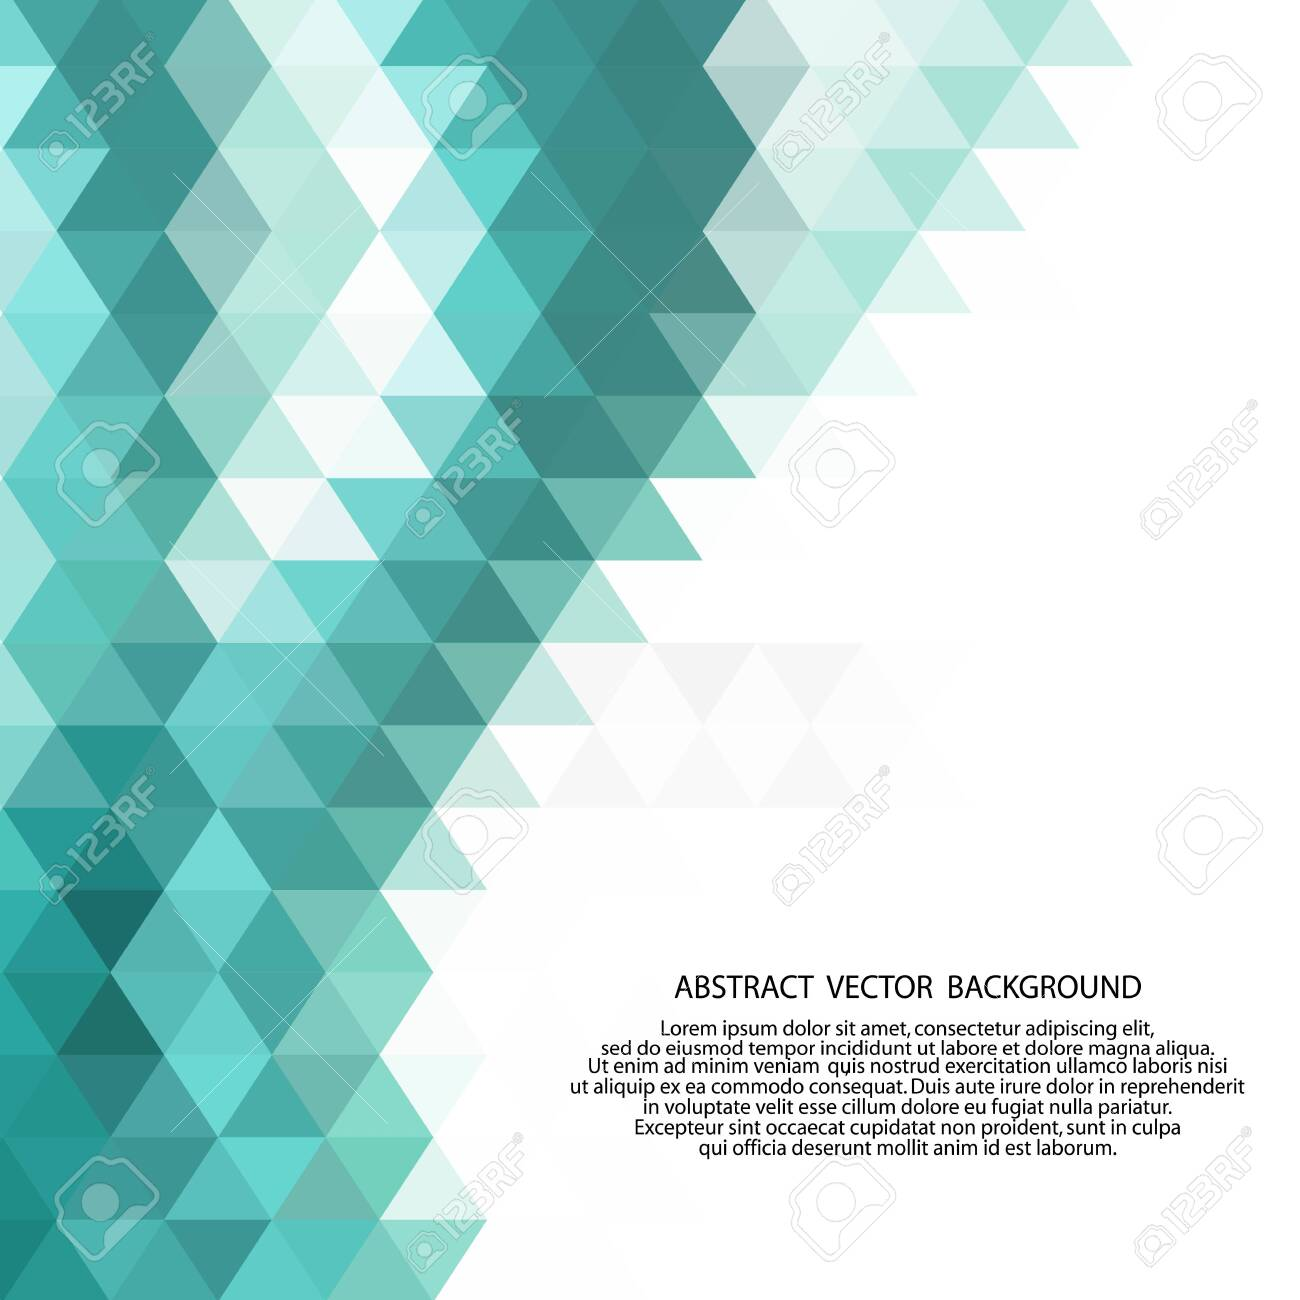 Abstract low poly background of triangles in blue colors. - 133533843